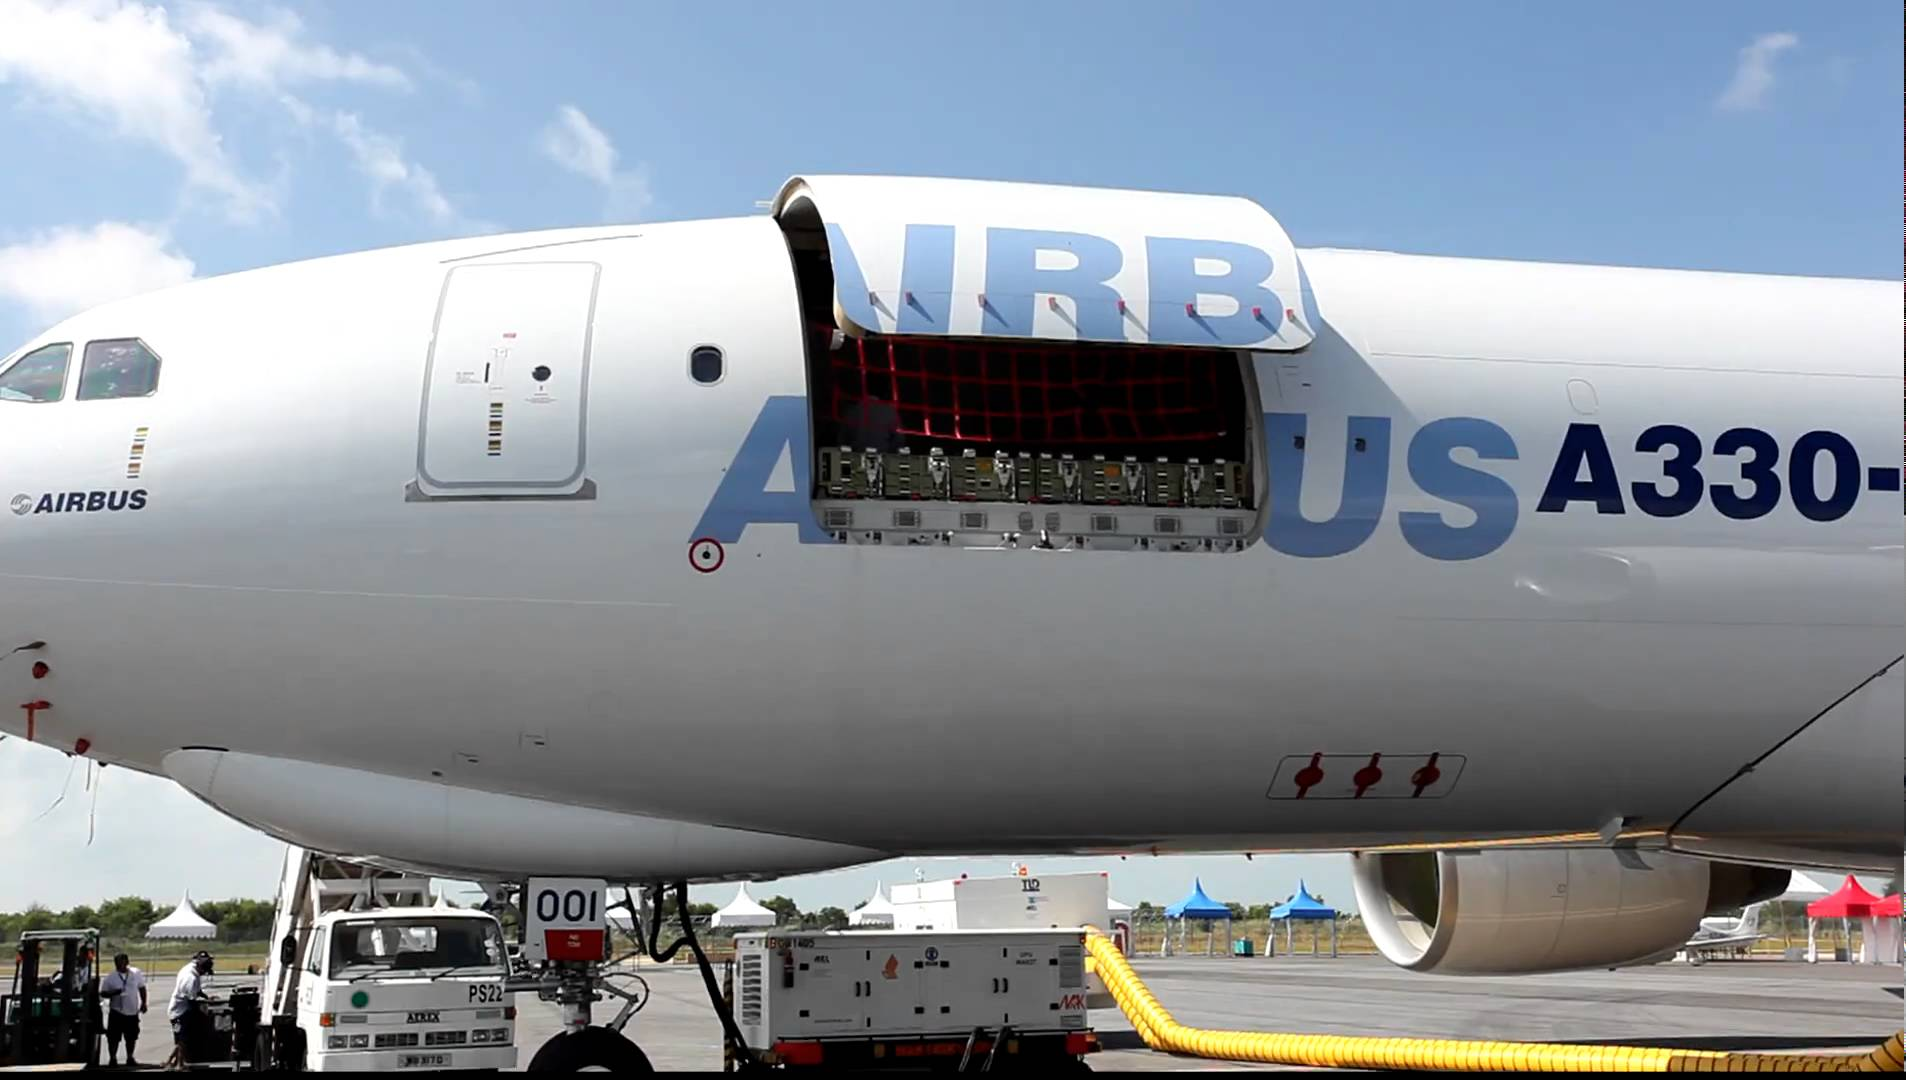 Airbus A330-200 Freighter